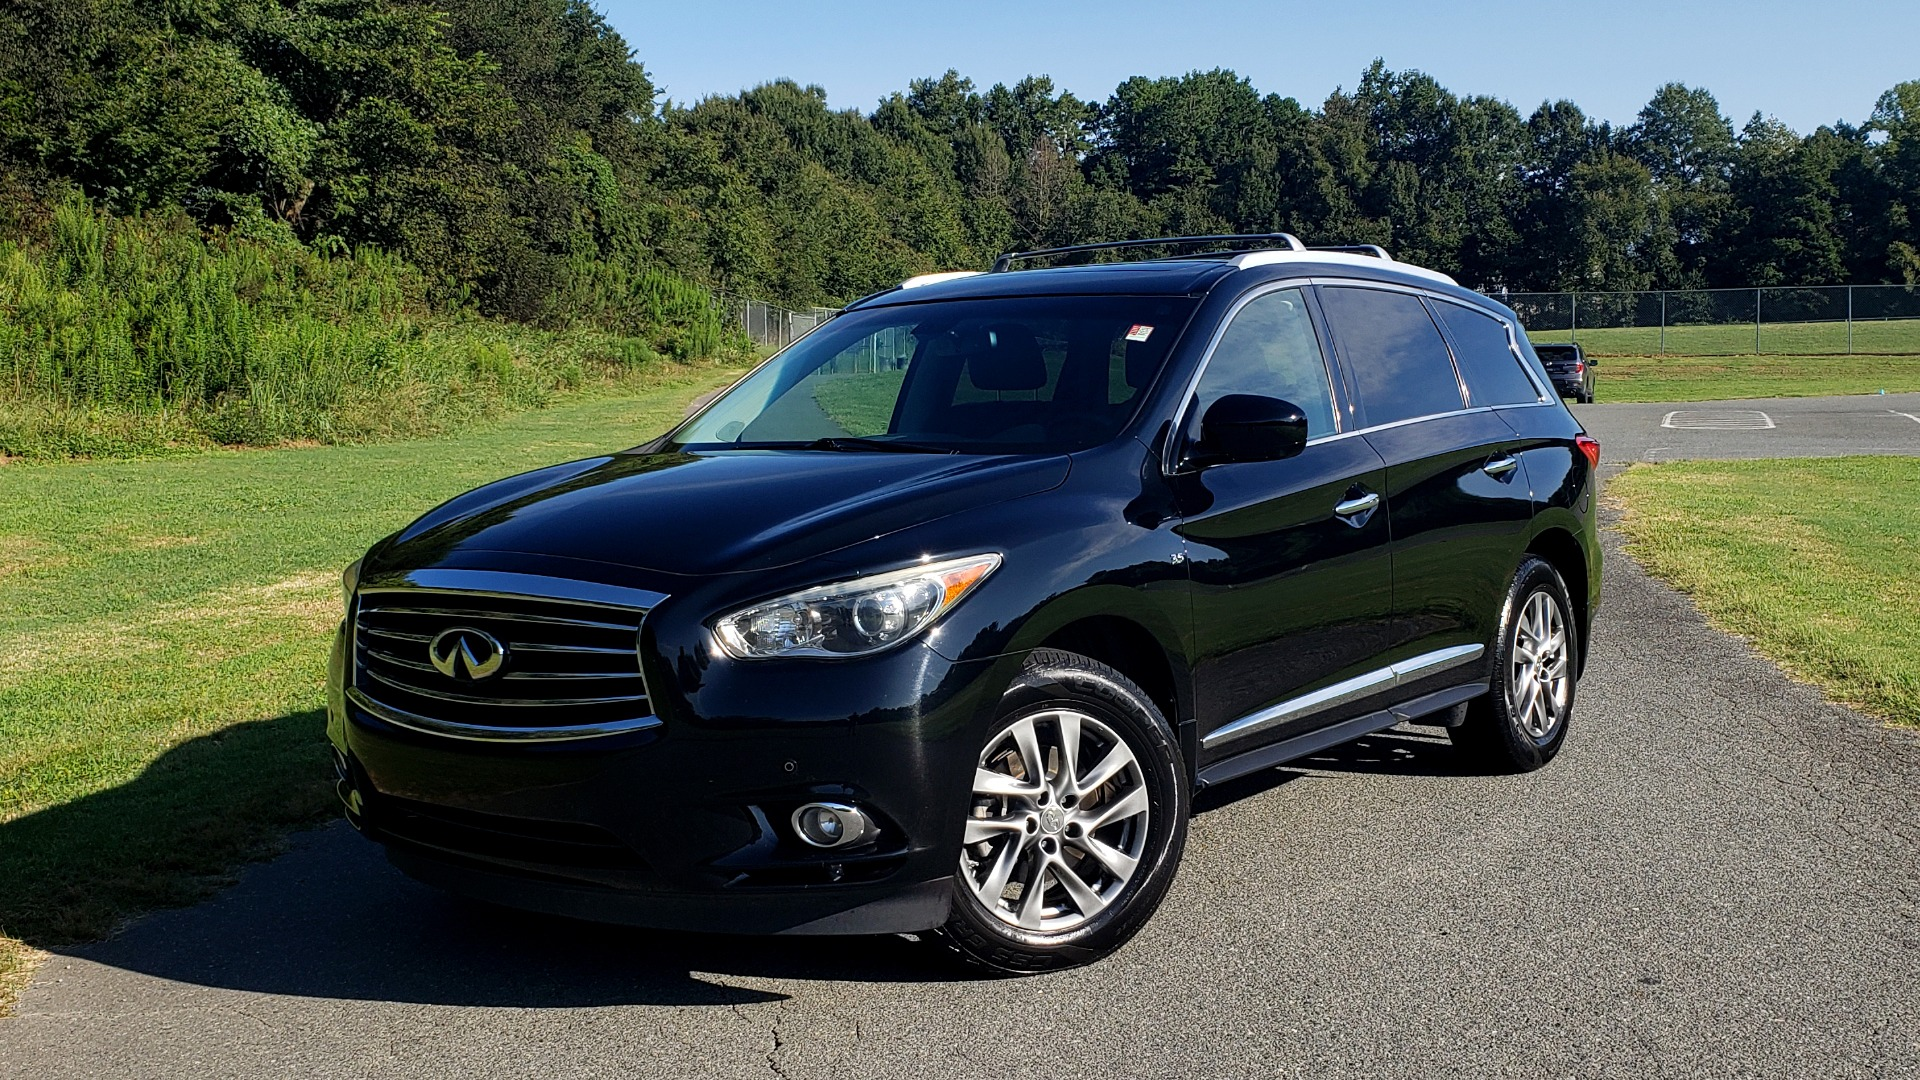 Used 2015 INFINITI QX60 AWD / PREM PLUS PKG / NAV / SUNROOF / BOSE / 3-ROW / REARVIEW for sale $19,695 at Formula Imports in Charlotte NC 28227 1